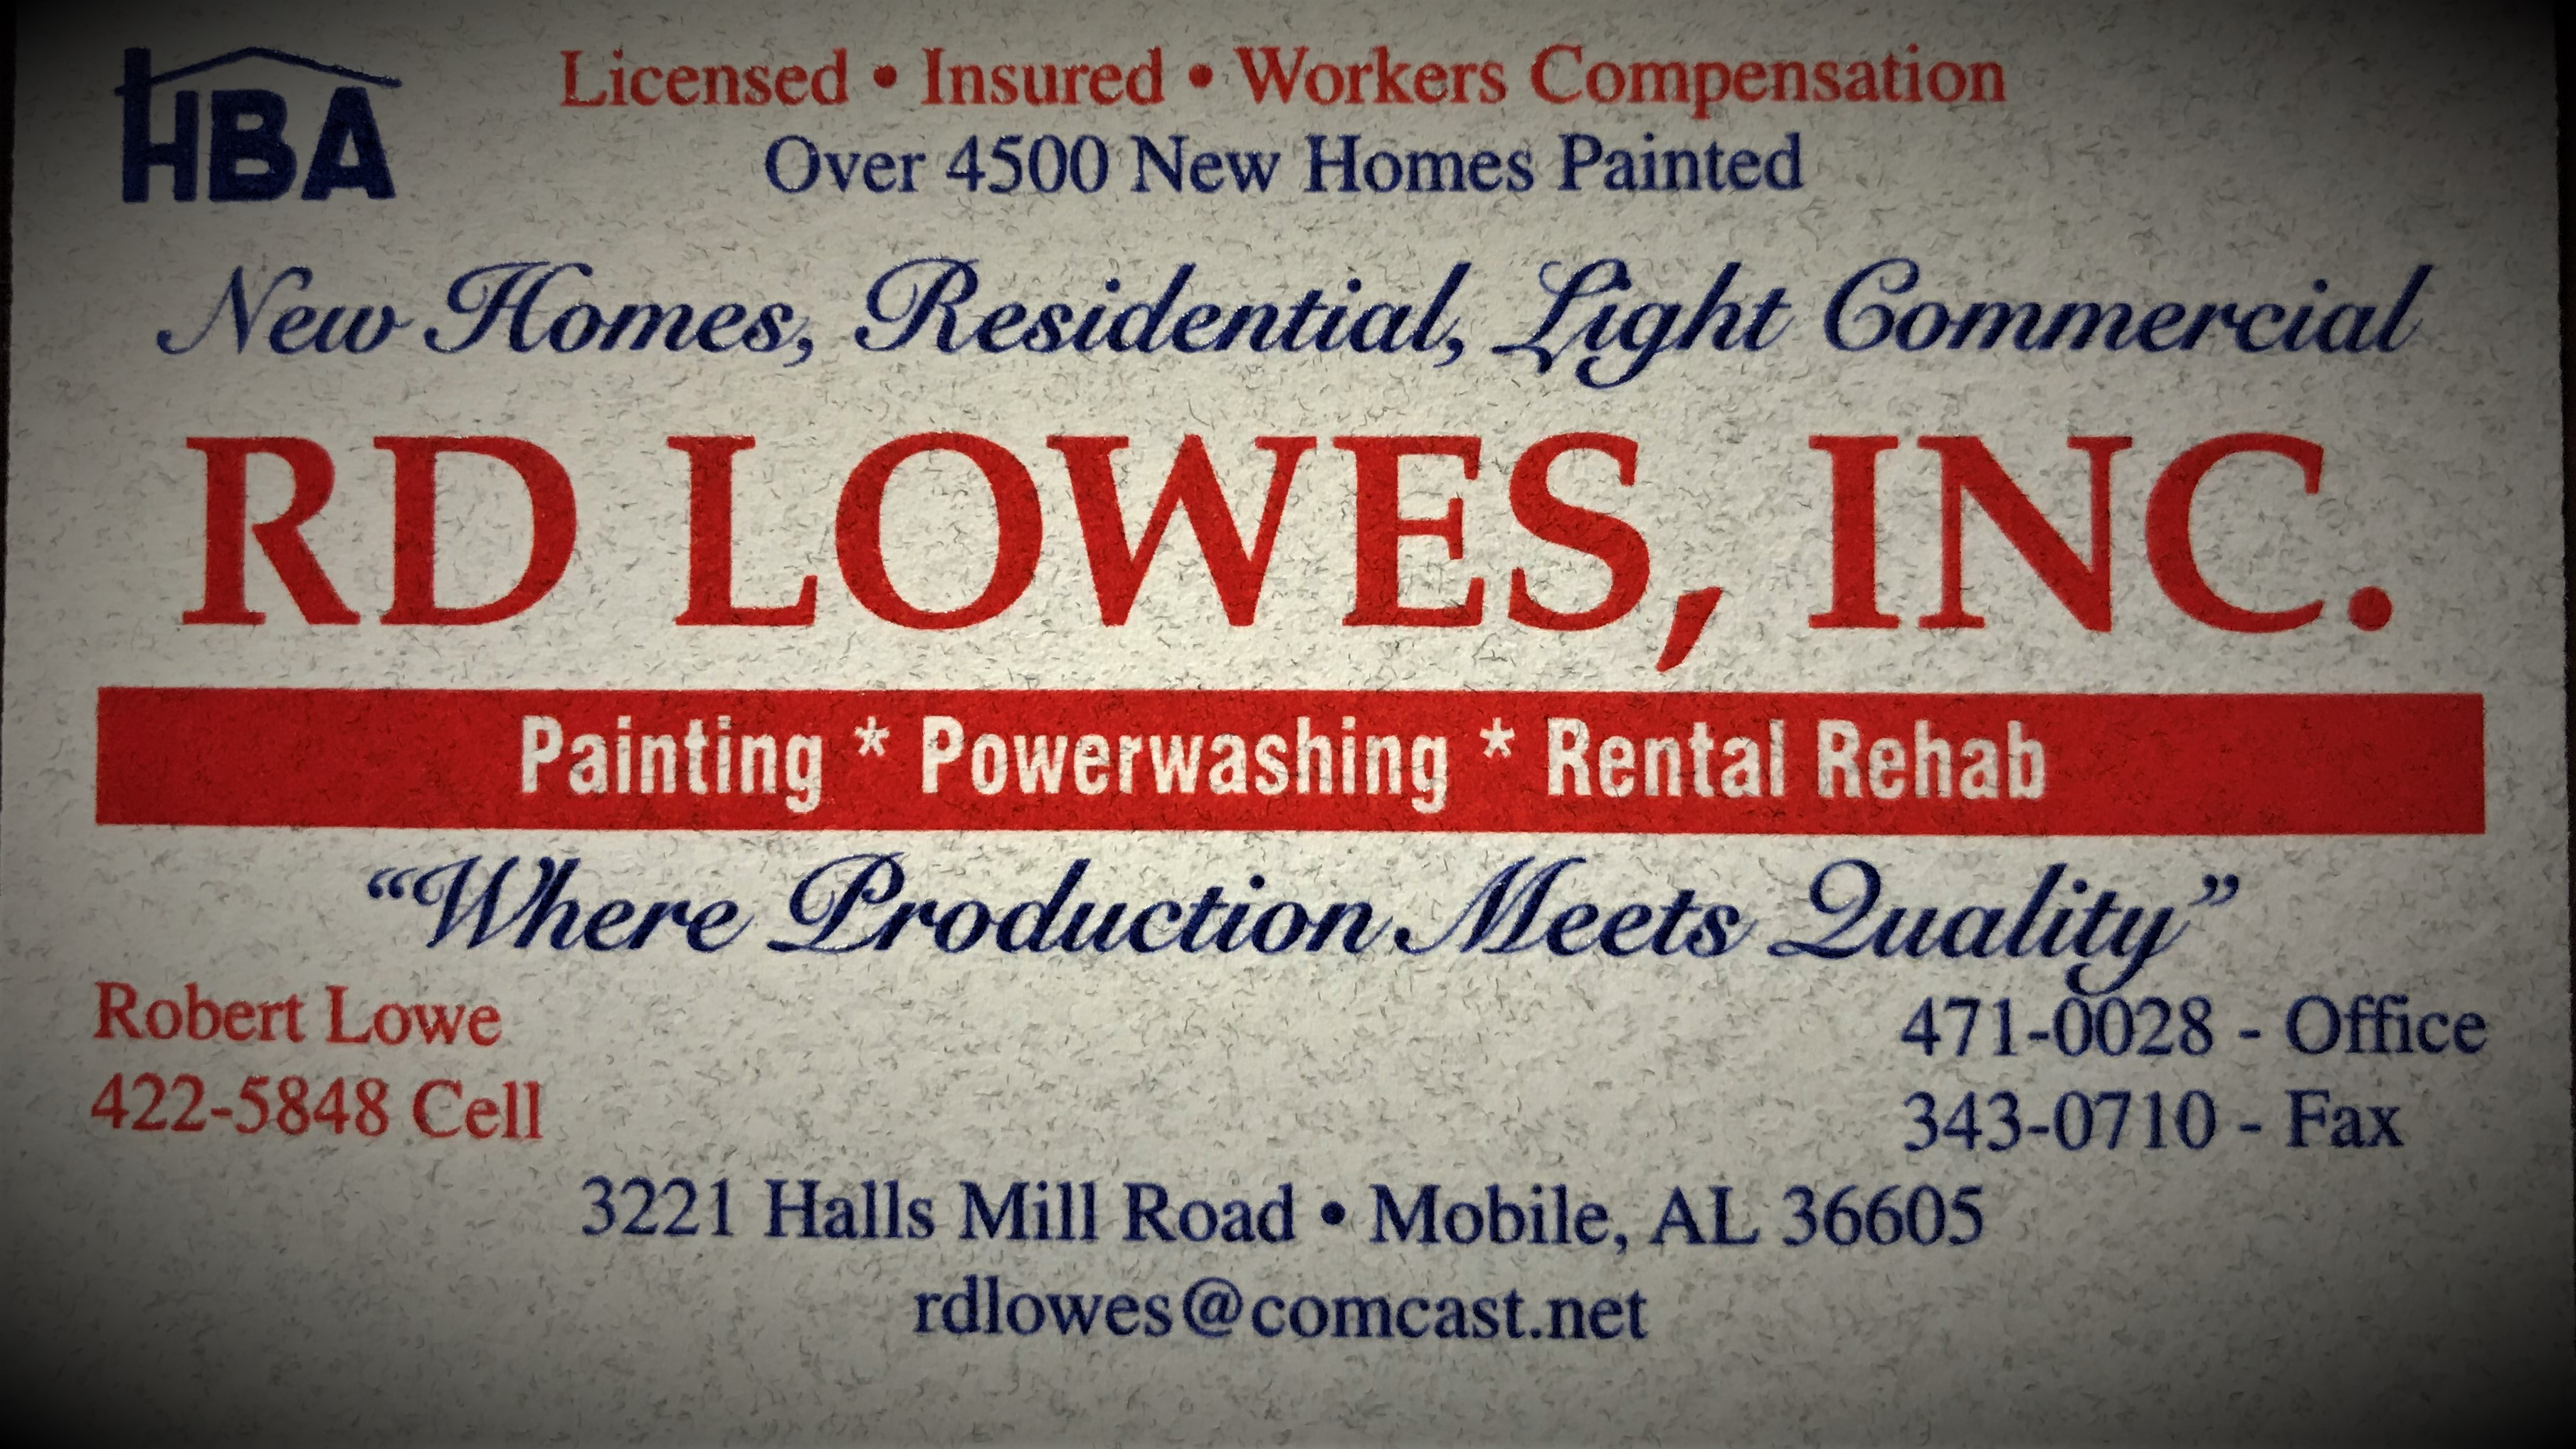 RD LOWES, INC Business Logo